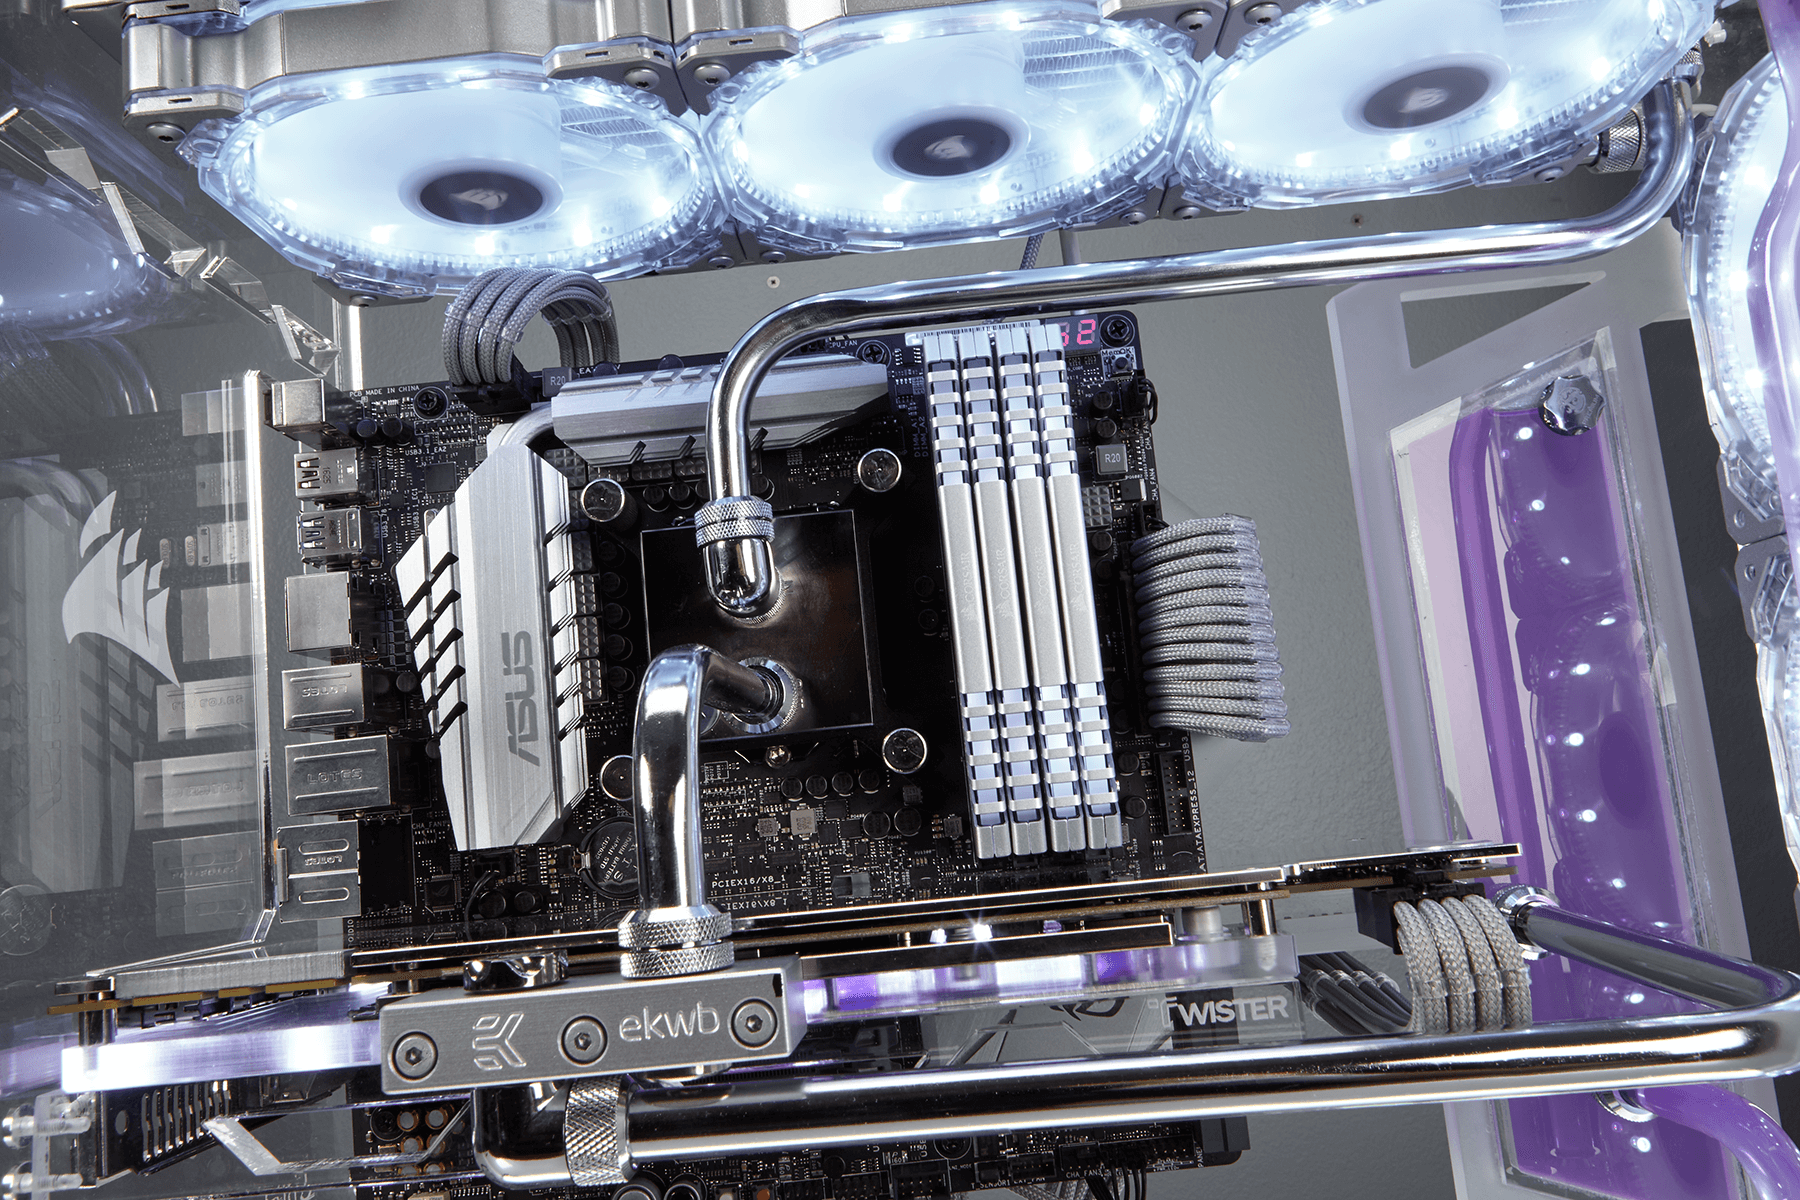 Twistermod_Corsair_ROG_570x_Crystalized_16